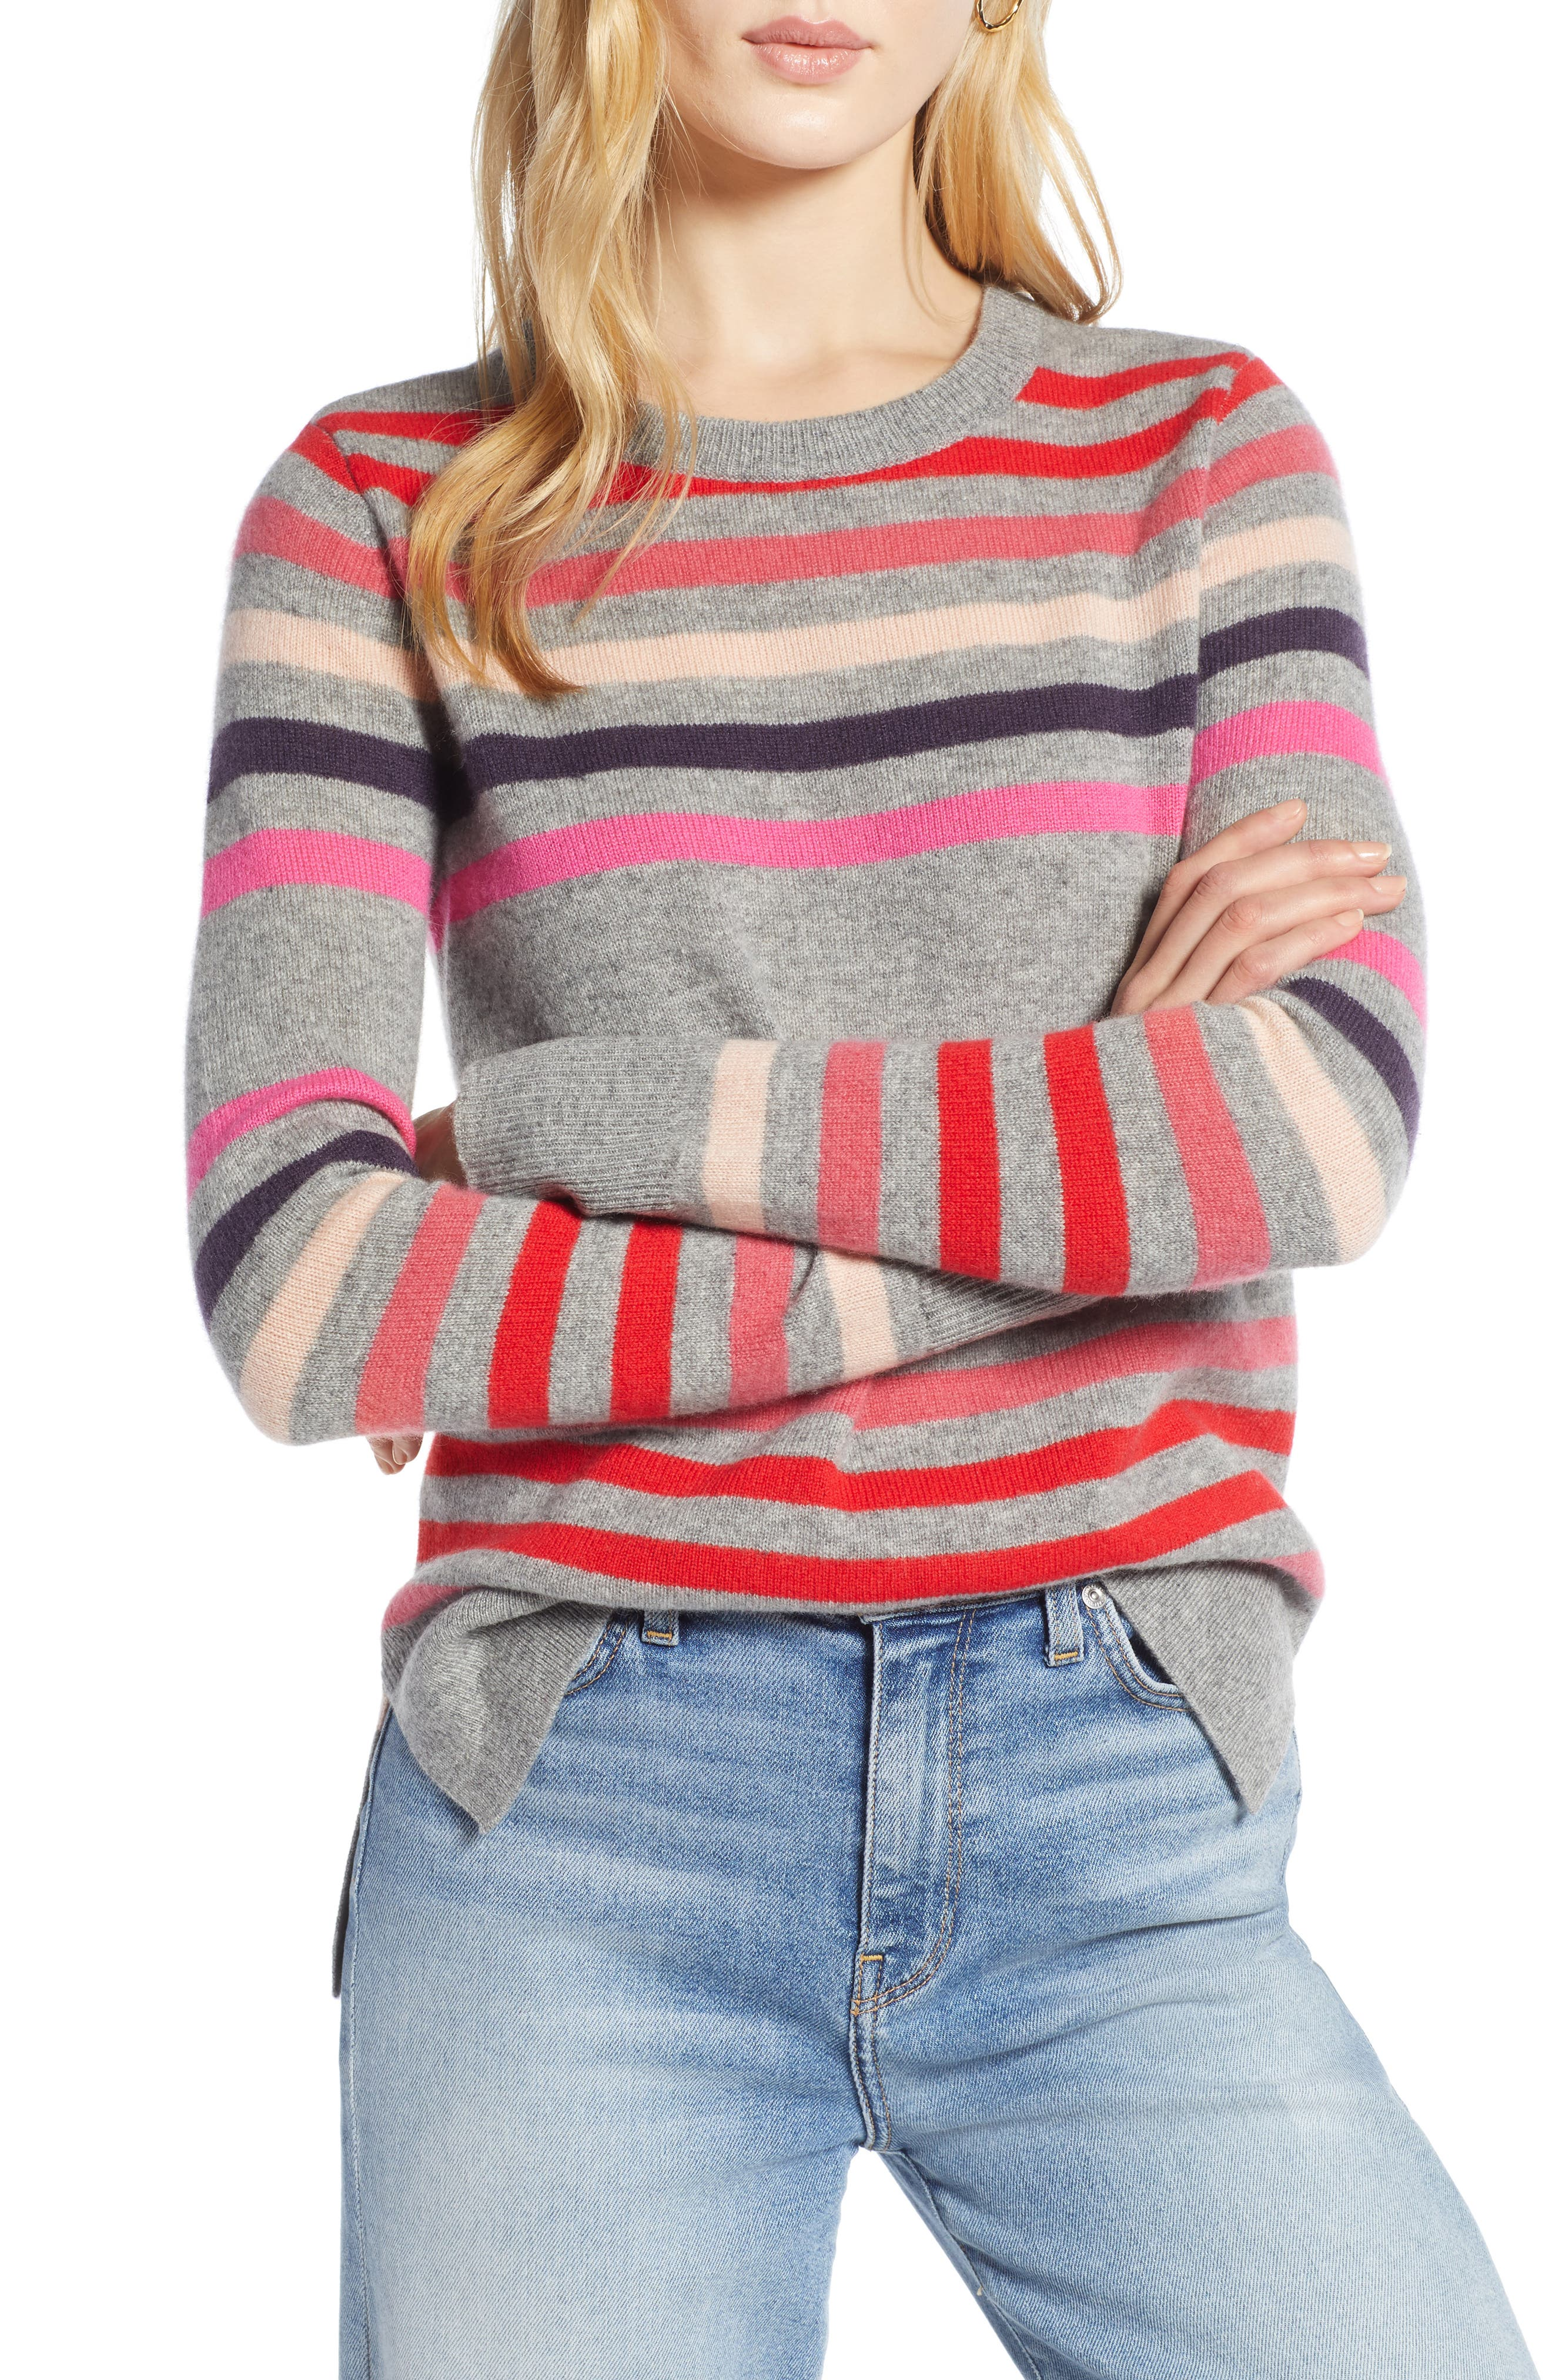 Crewneck Cashmere Sweater,                             Main thumbnail 1, color,                             GREY- PINK STRIPE